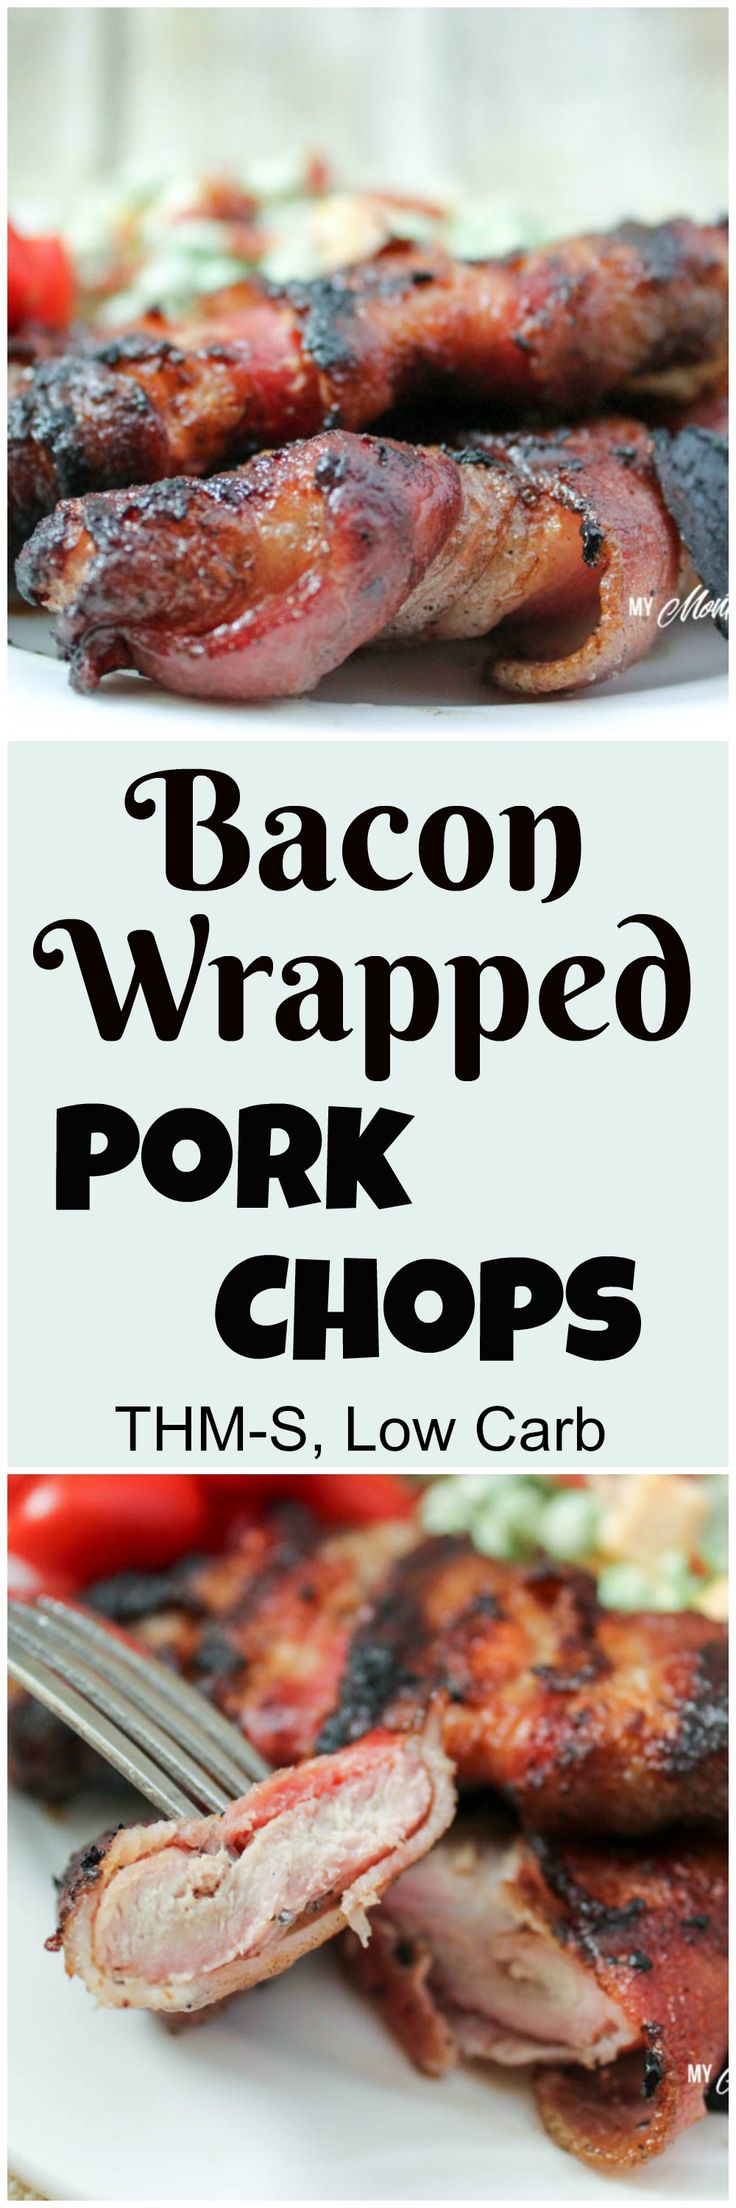 Bacon Wrapped Pork Chops (THM-S, Low Carb)